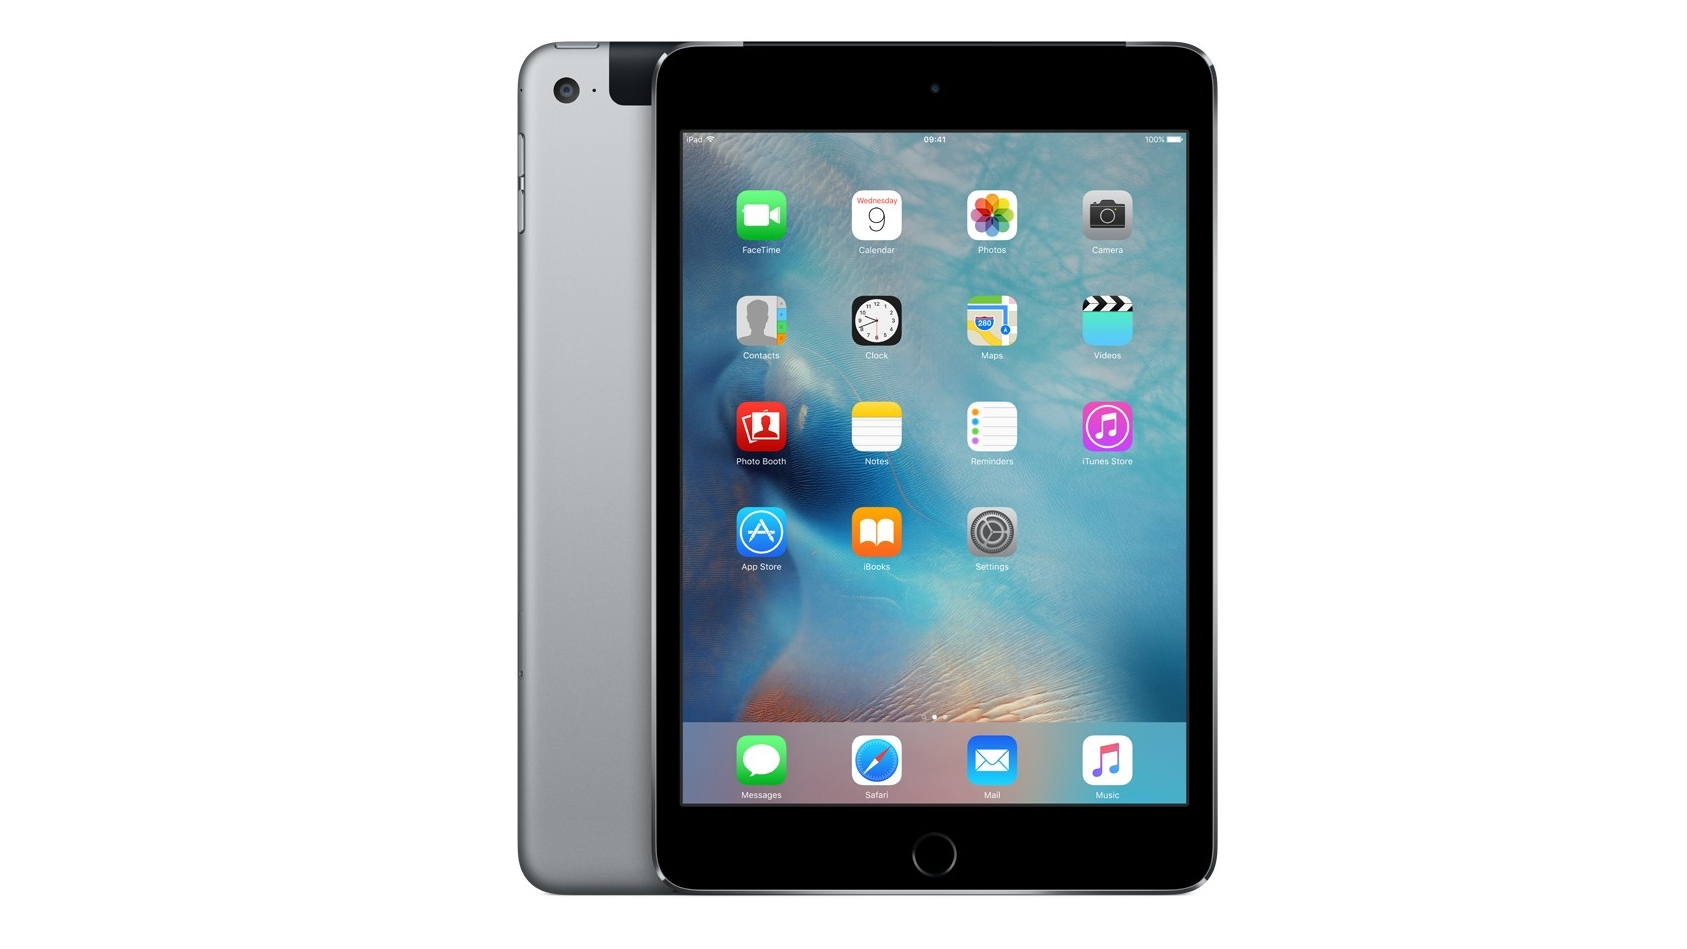 eb606e36672 The best iPad mini deals on Black Friday 2016 - MGI Distribution